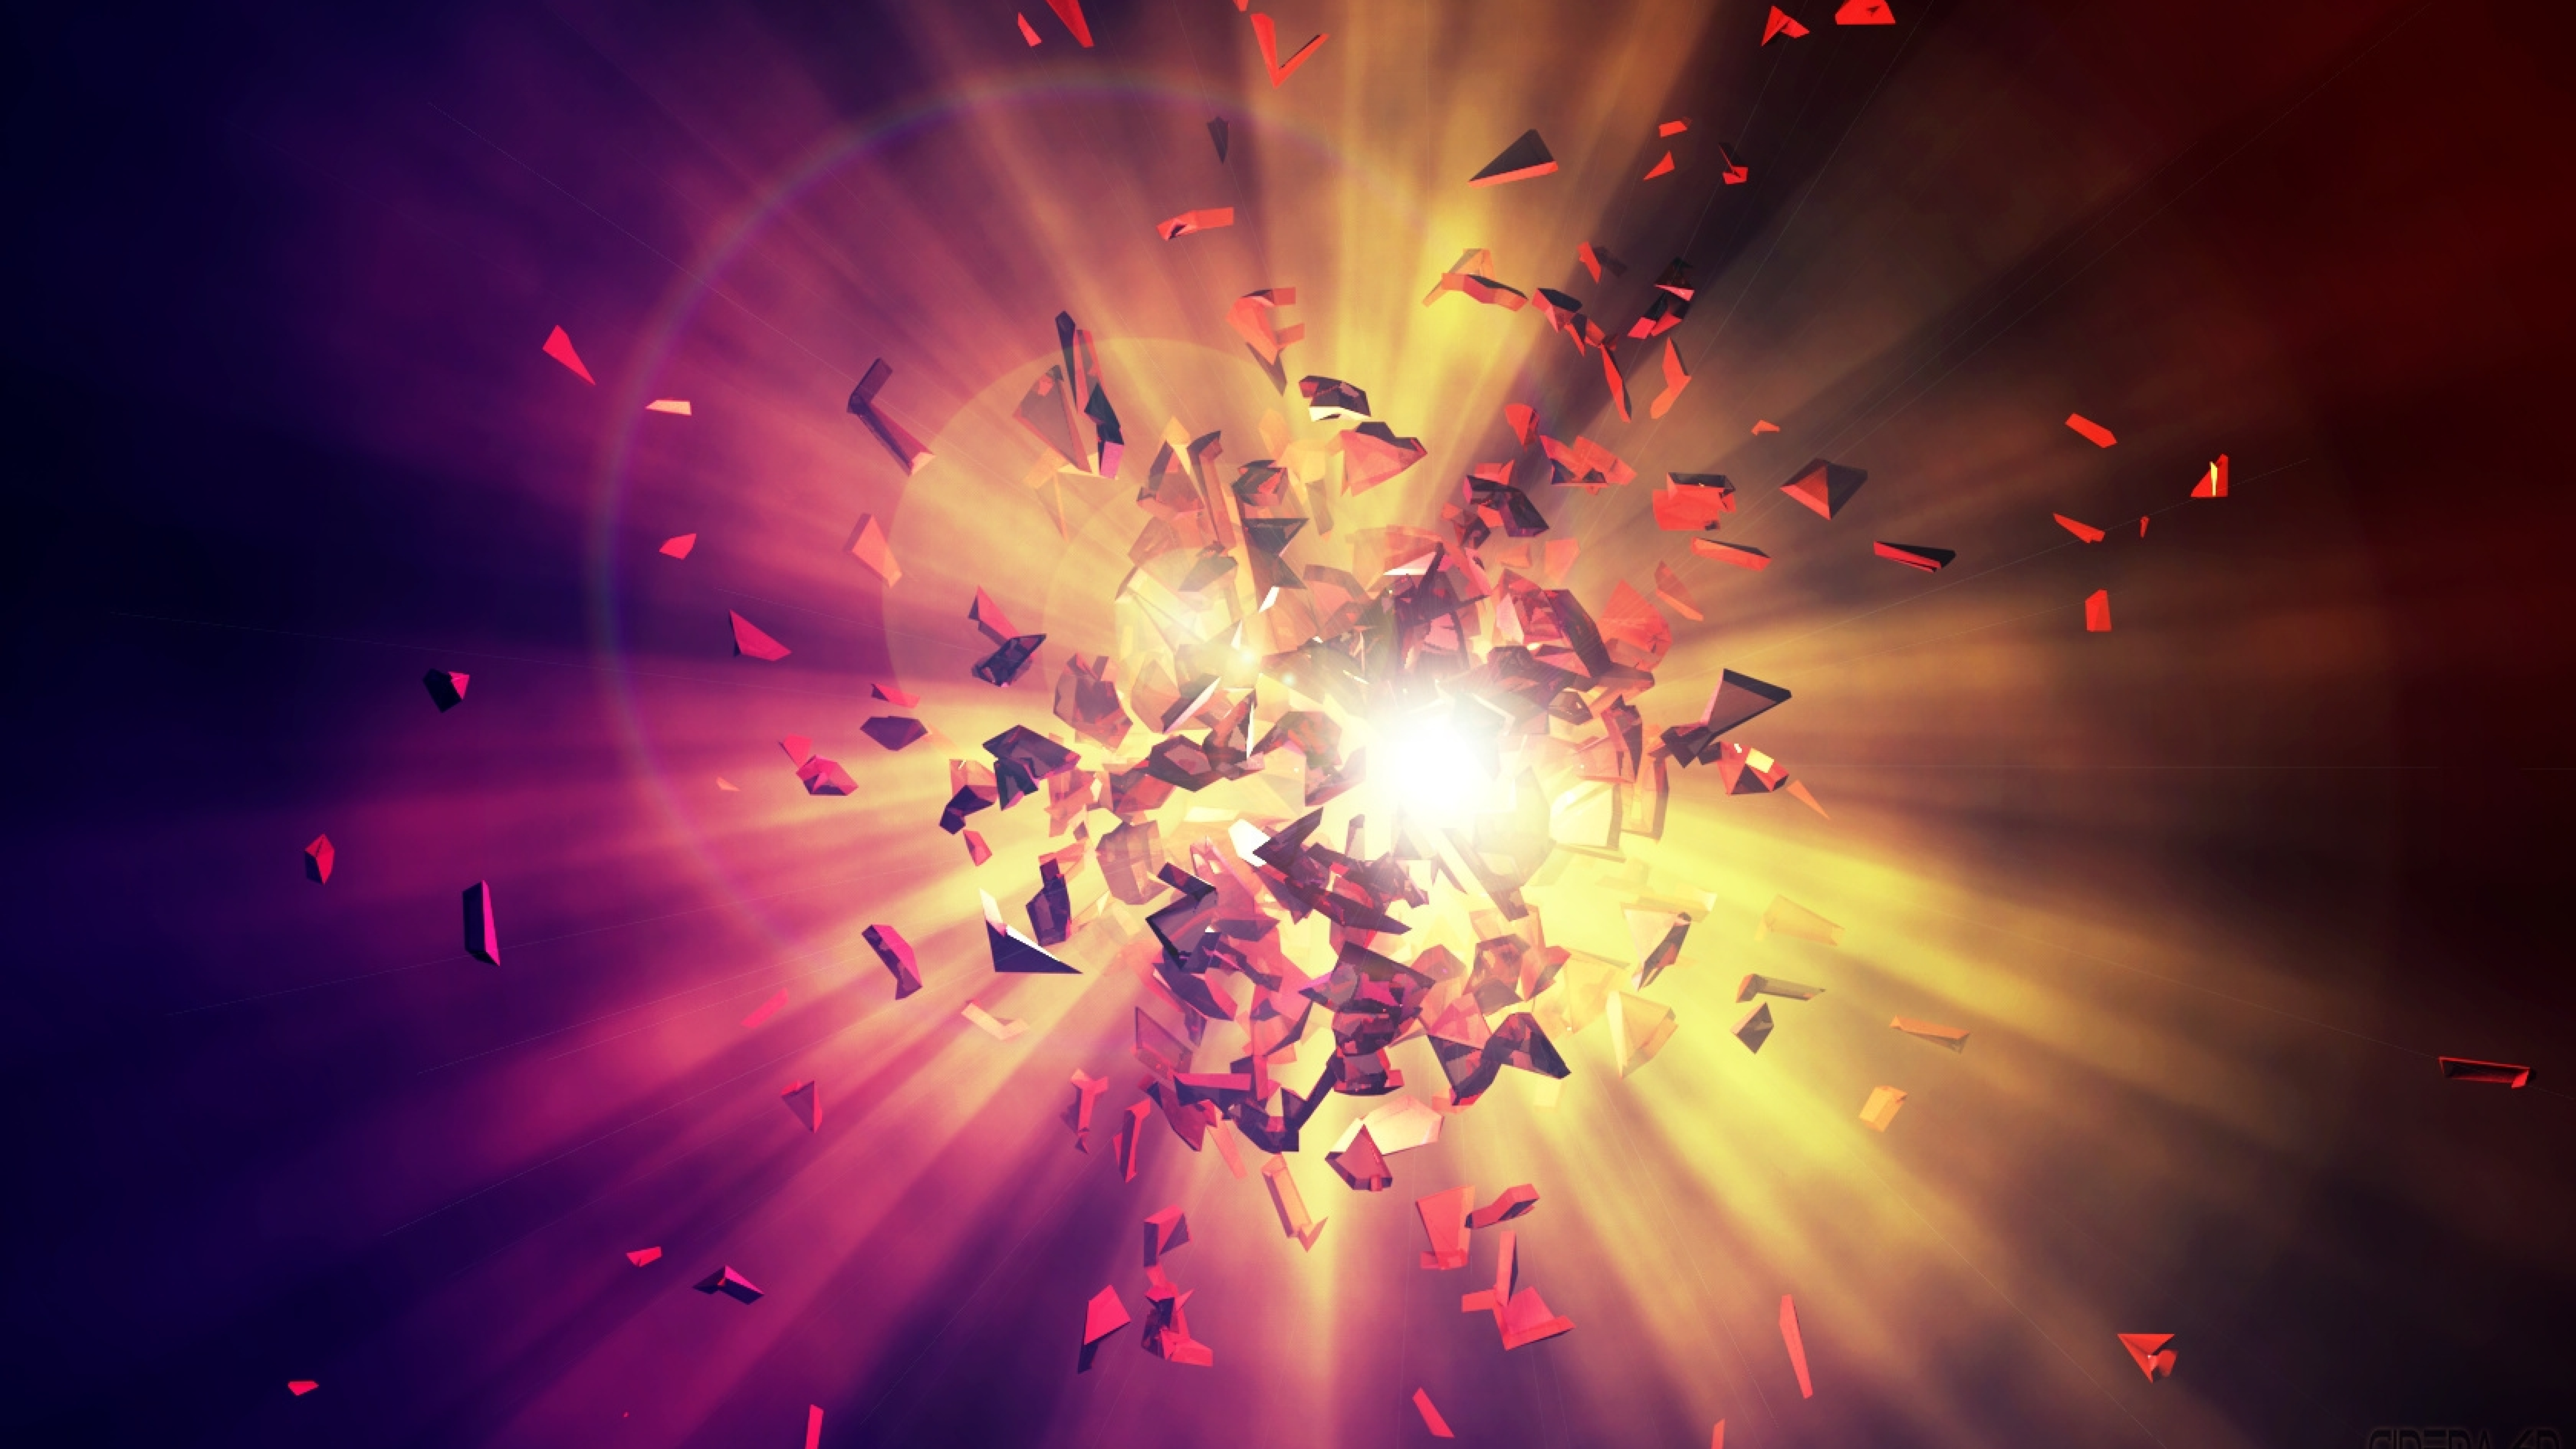 Download shards explosion energy 1440x2560 resolution - Explosion wallpaper ...